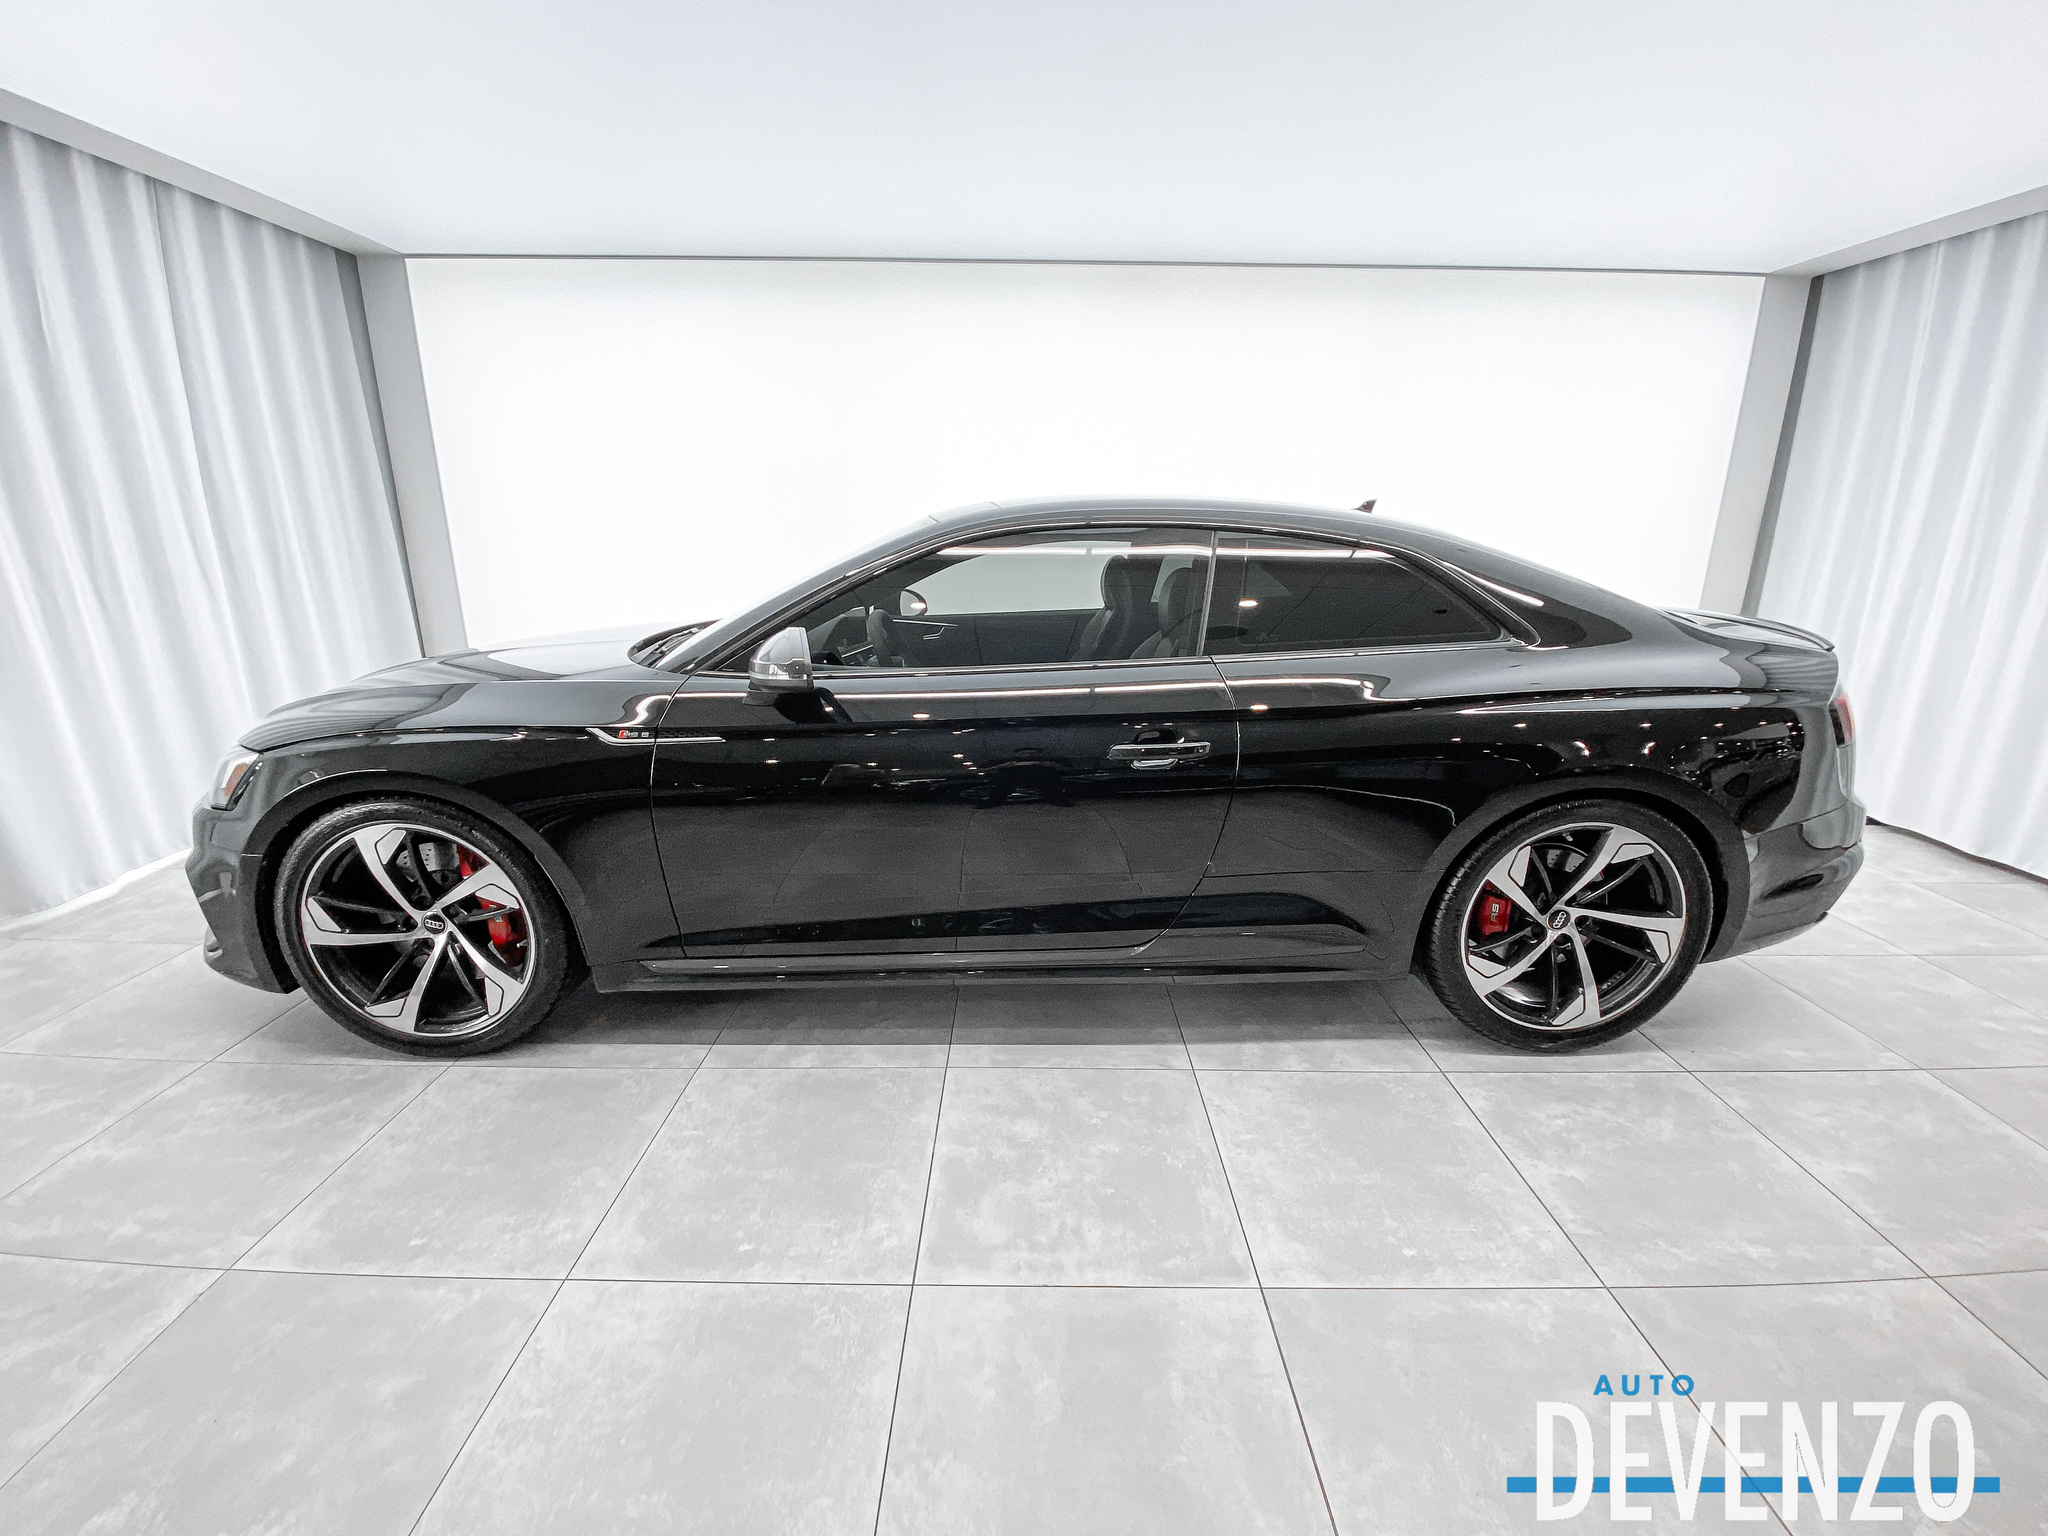 2018 Audi RS 5 Coupe RS5 COUPE 2.9 TFSI QUATTRO 444HP CARBON OPTICS complet